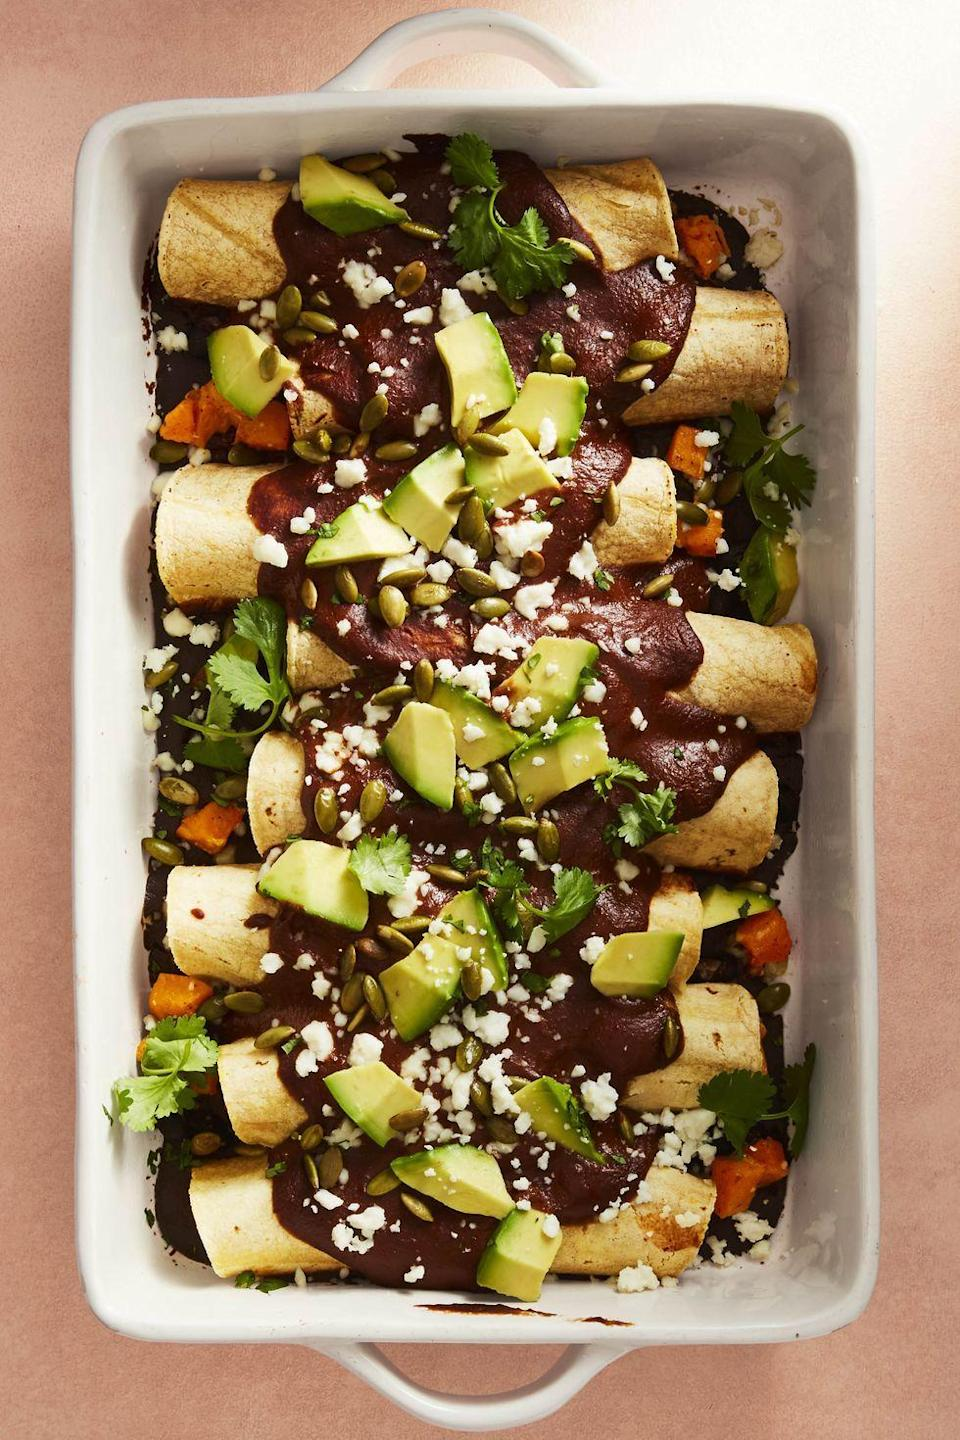 """<p>If you're a convert to meatless eating or are simply trying to get more nutrients into your diet, having a roster of easy vegetarian recipes on hand makes it faster to get dinner on the table. But going the vegetarian route doesn't have to mean endless <a href=""""https://www.goodhousekeeping.com/food-recipes/healthy/g180/healthy-salads/"""" rel=""""nofollow noopener"""" target=""""_blank"""" data-ylk=""""slk:healthy salads recipes"""" class=""""link rapid-noclick-resp"""">healthy salads recipes</a> and tons of soy products, either. Those can play a part (hello, crispy pan-fried tofu!), but the appeal of turning to vegetarian dinner ideas, if only for a single meal out of the week, is that there are so many healthy possibilities that go beyond the boring.<br><br>A perfect vegetarian meal should be well balanced, both in nutrition and flavor, and satisfying enough that you're not left craving something else. A few pointers: Stock your pantry with grains that have health benefits, such as barley or farro and protein-packed pulses such as lentils and chickpeas. (Make weeknight dinners and lunches even easier and check out these tricks for <a href=""""https://www.goodhousekeeping.com/food-recipes/a28377603/how-to-meal-prep/"""" rel=""""nofollow noopener"""" target=""""_blank"""" data-ylk=""""slk:how to meal prep"""" class=""""link rapid-noclick-resp"""">how to meal prep</a> the heck out of those pantry picks.) Stash a few plant-based meats in your freezer, if that's your thing — see our picks for <a href=""""https://www.goodhousekeeping.com/food-recipes/g32733789/best-meat-substitutes/"""" rel=""""nofollow noopener"""" target=""""_blank"""" data-ylk=""""slk:best meat-substitutes"""" class=""""link rapid-noclick-resp"""">best meat-substitutes</a>. Then, fill your fridge with a rainbow of veg and fruit options for added nutrients and flavor. Your meatless menus will be effortless, filling, and so downright delicious that even the biggest meat-lover at the table will beg for seconds.<br></p>"""